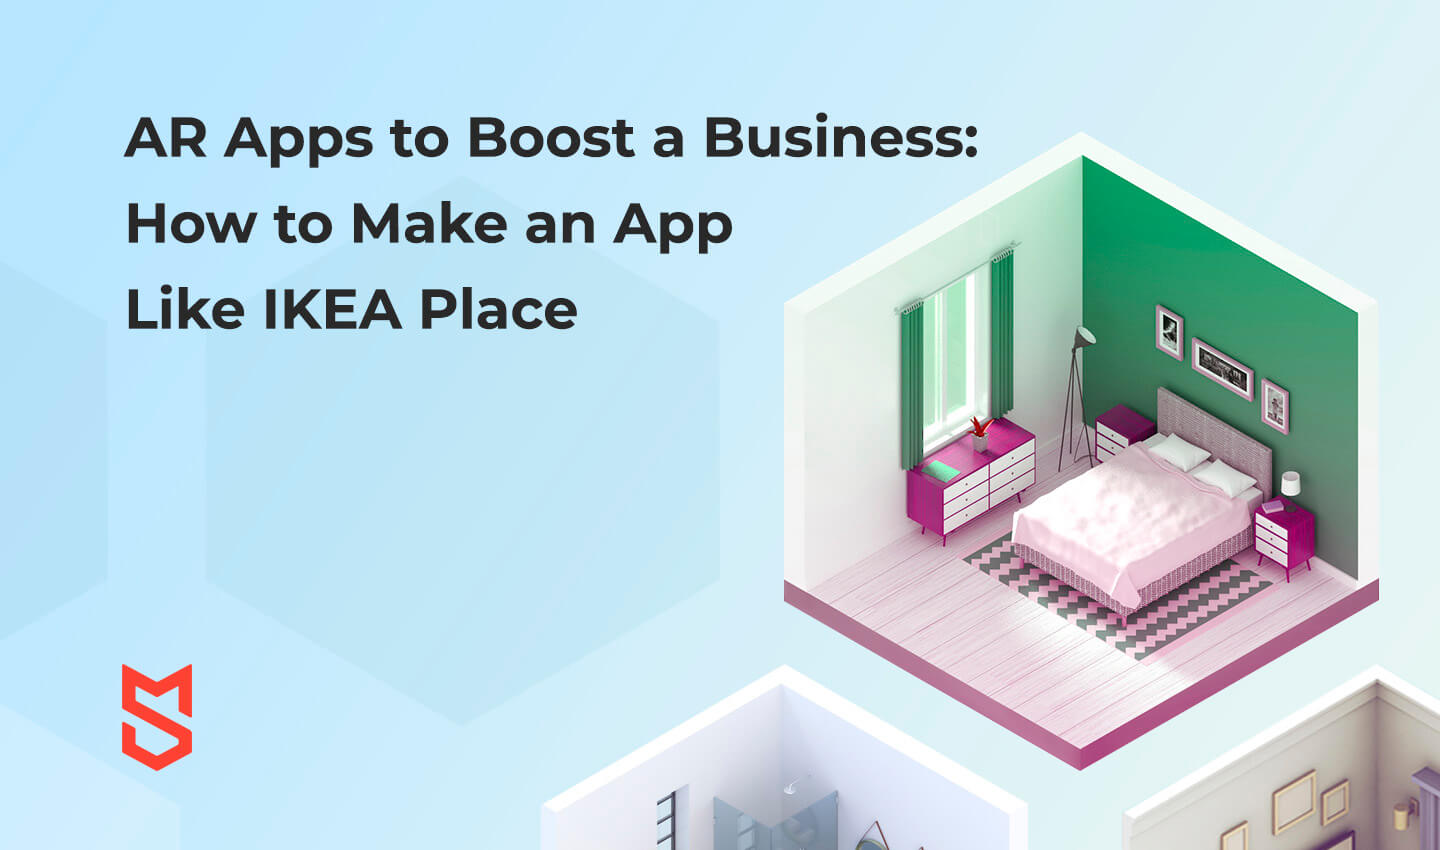 AR Apps Boost Business: How to Make an App Like IKEA Place